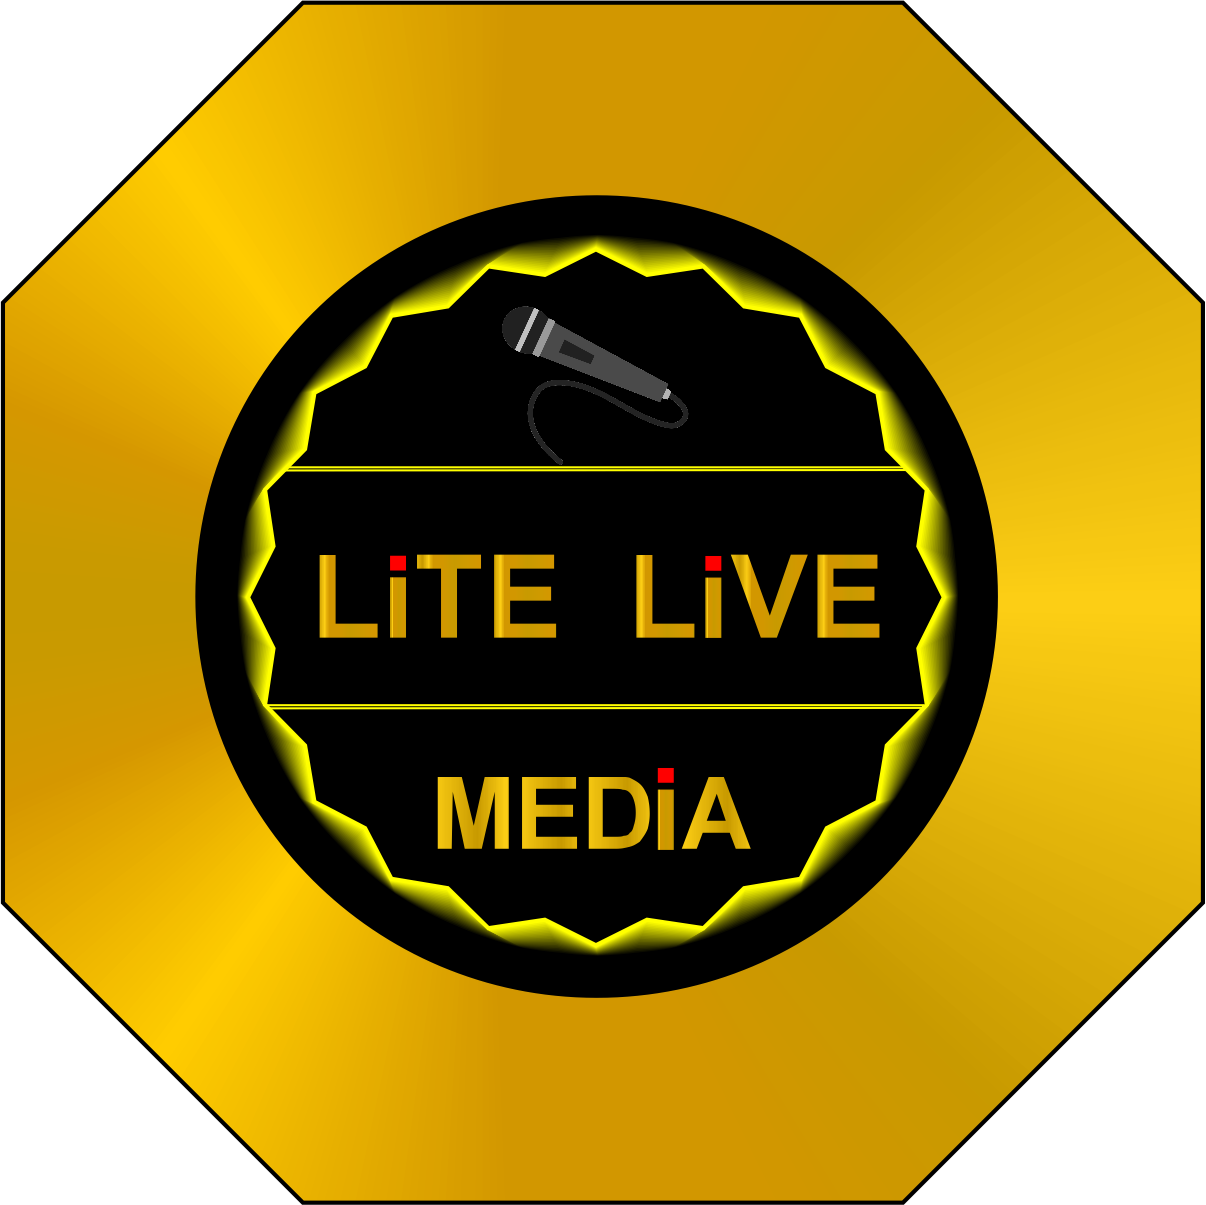 Welcome to Lite Live Media